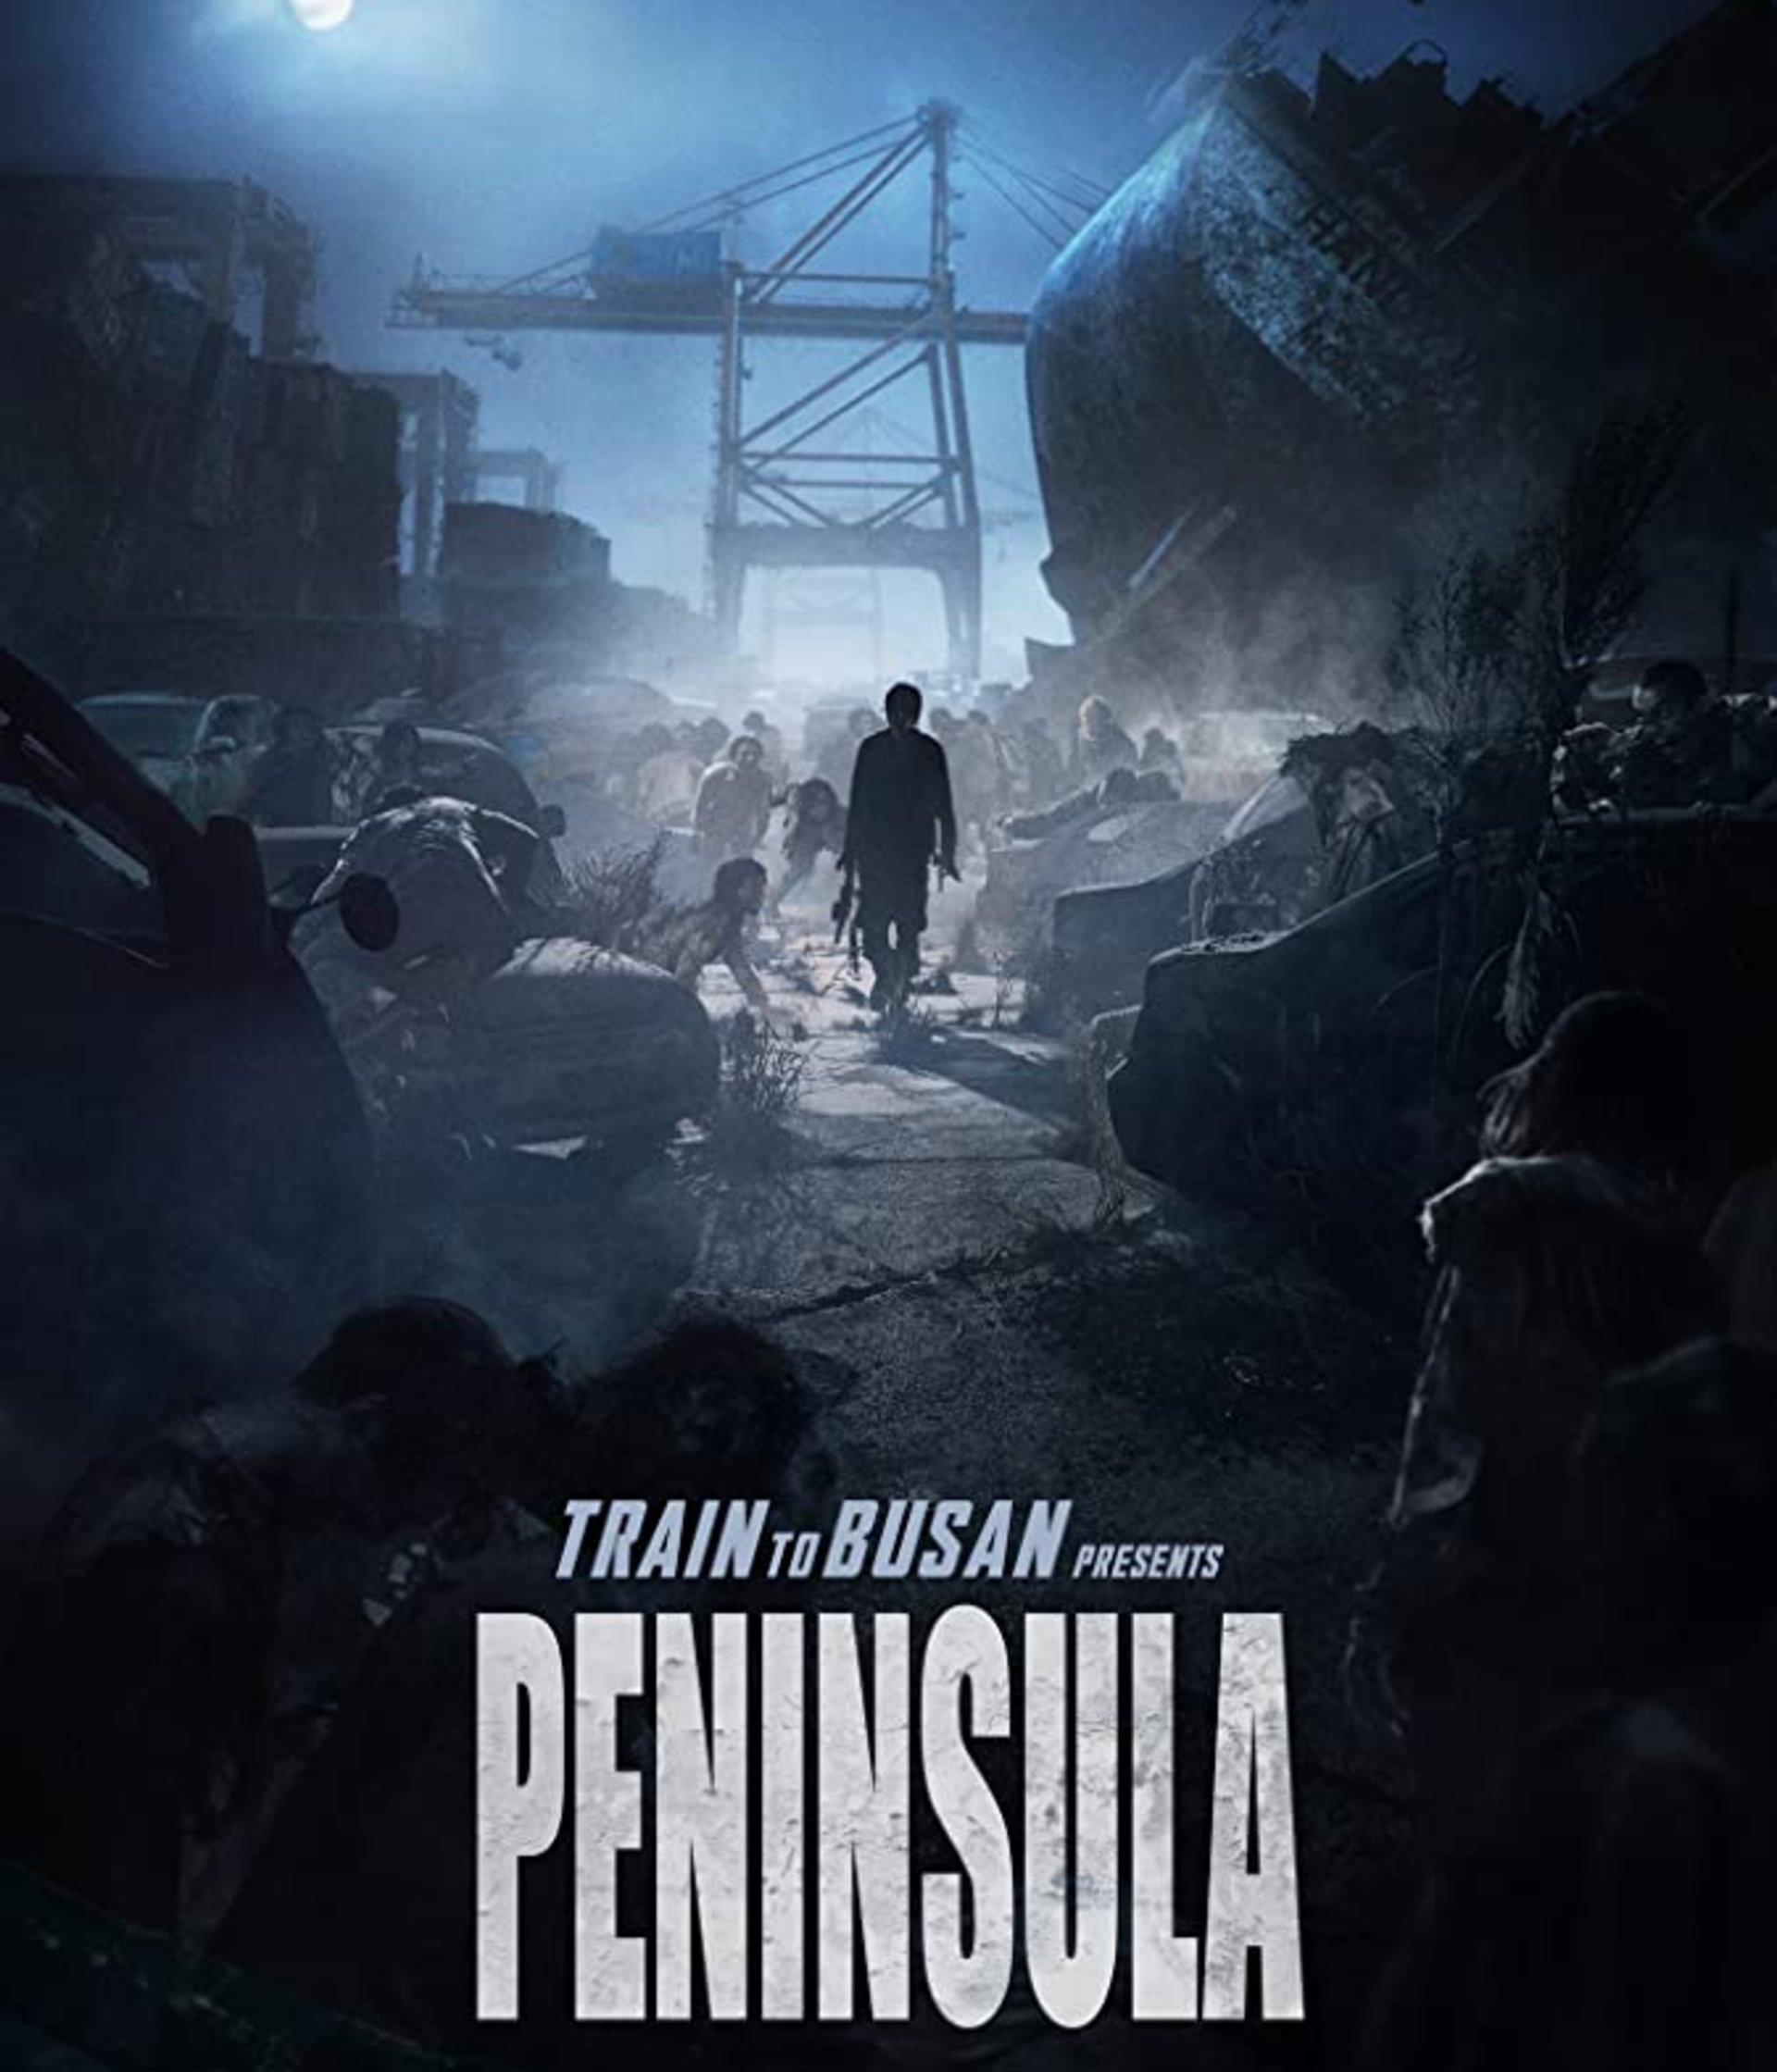 Free Download Train To Busan 2 Peninsula 2020 Hd Full Movie Chirpstorytop